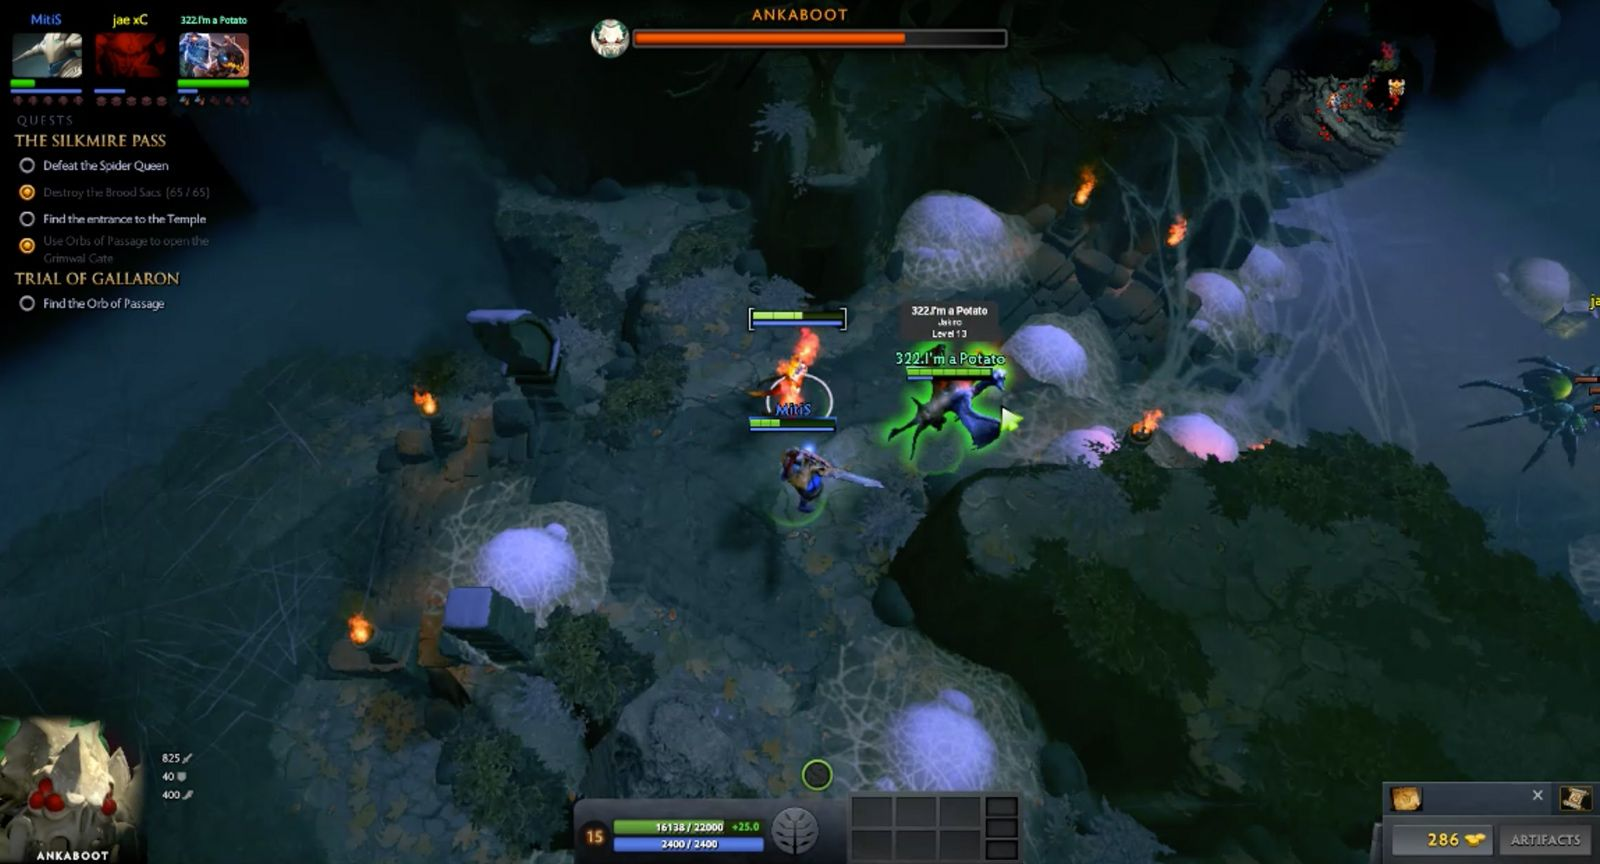 valve releases the first multiplayer campaign for dota 2